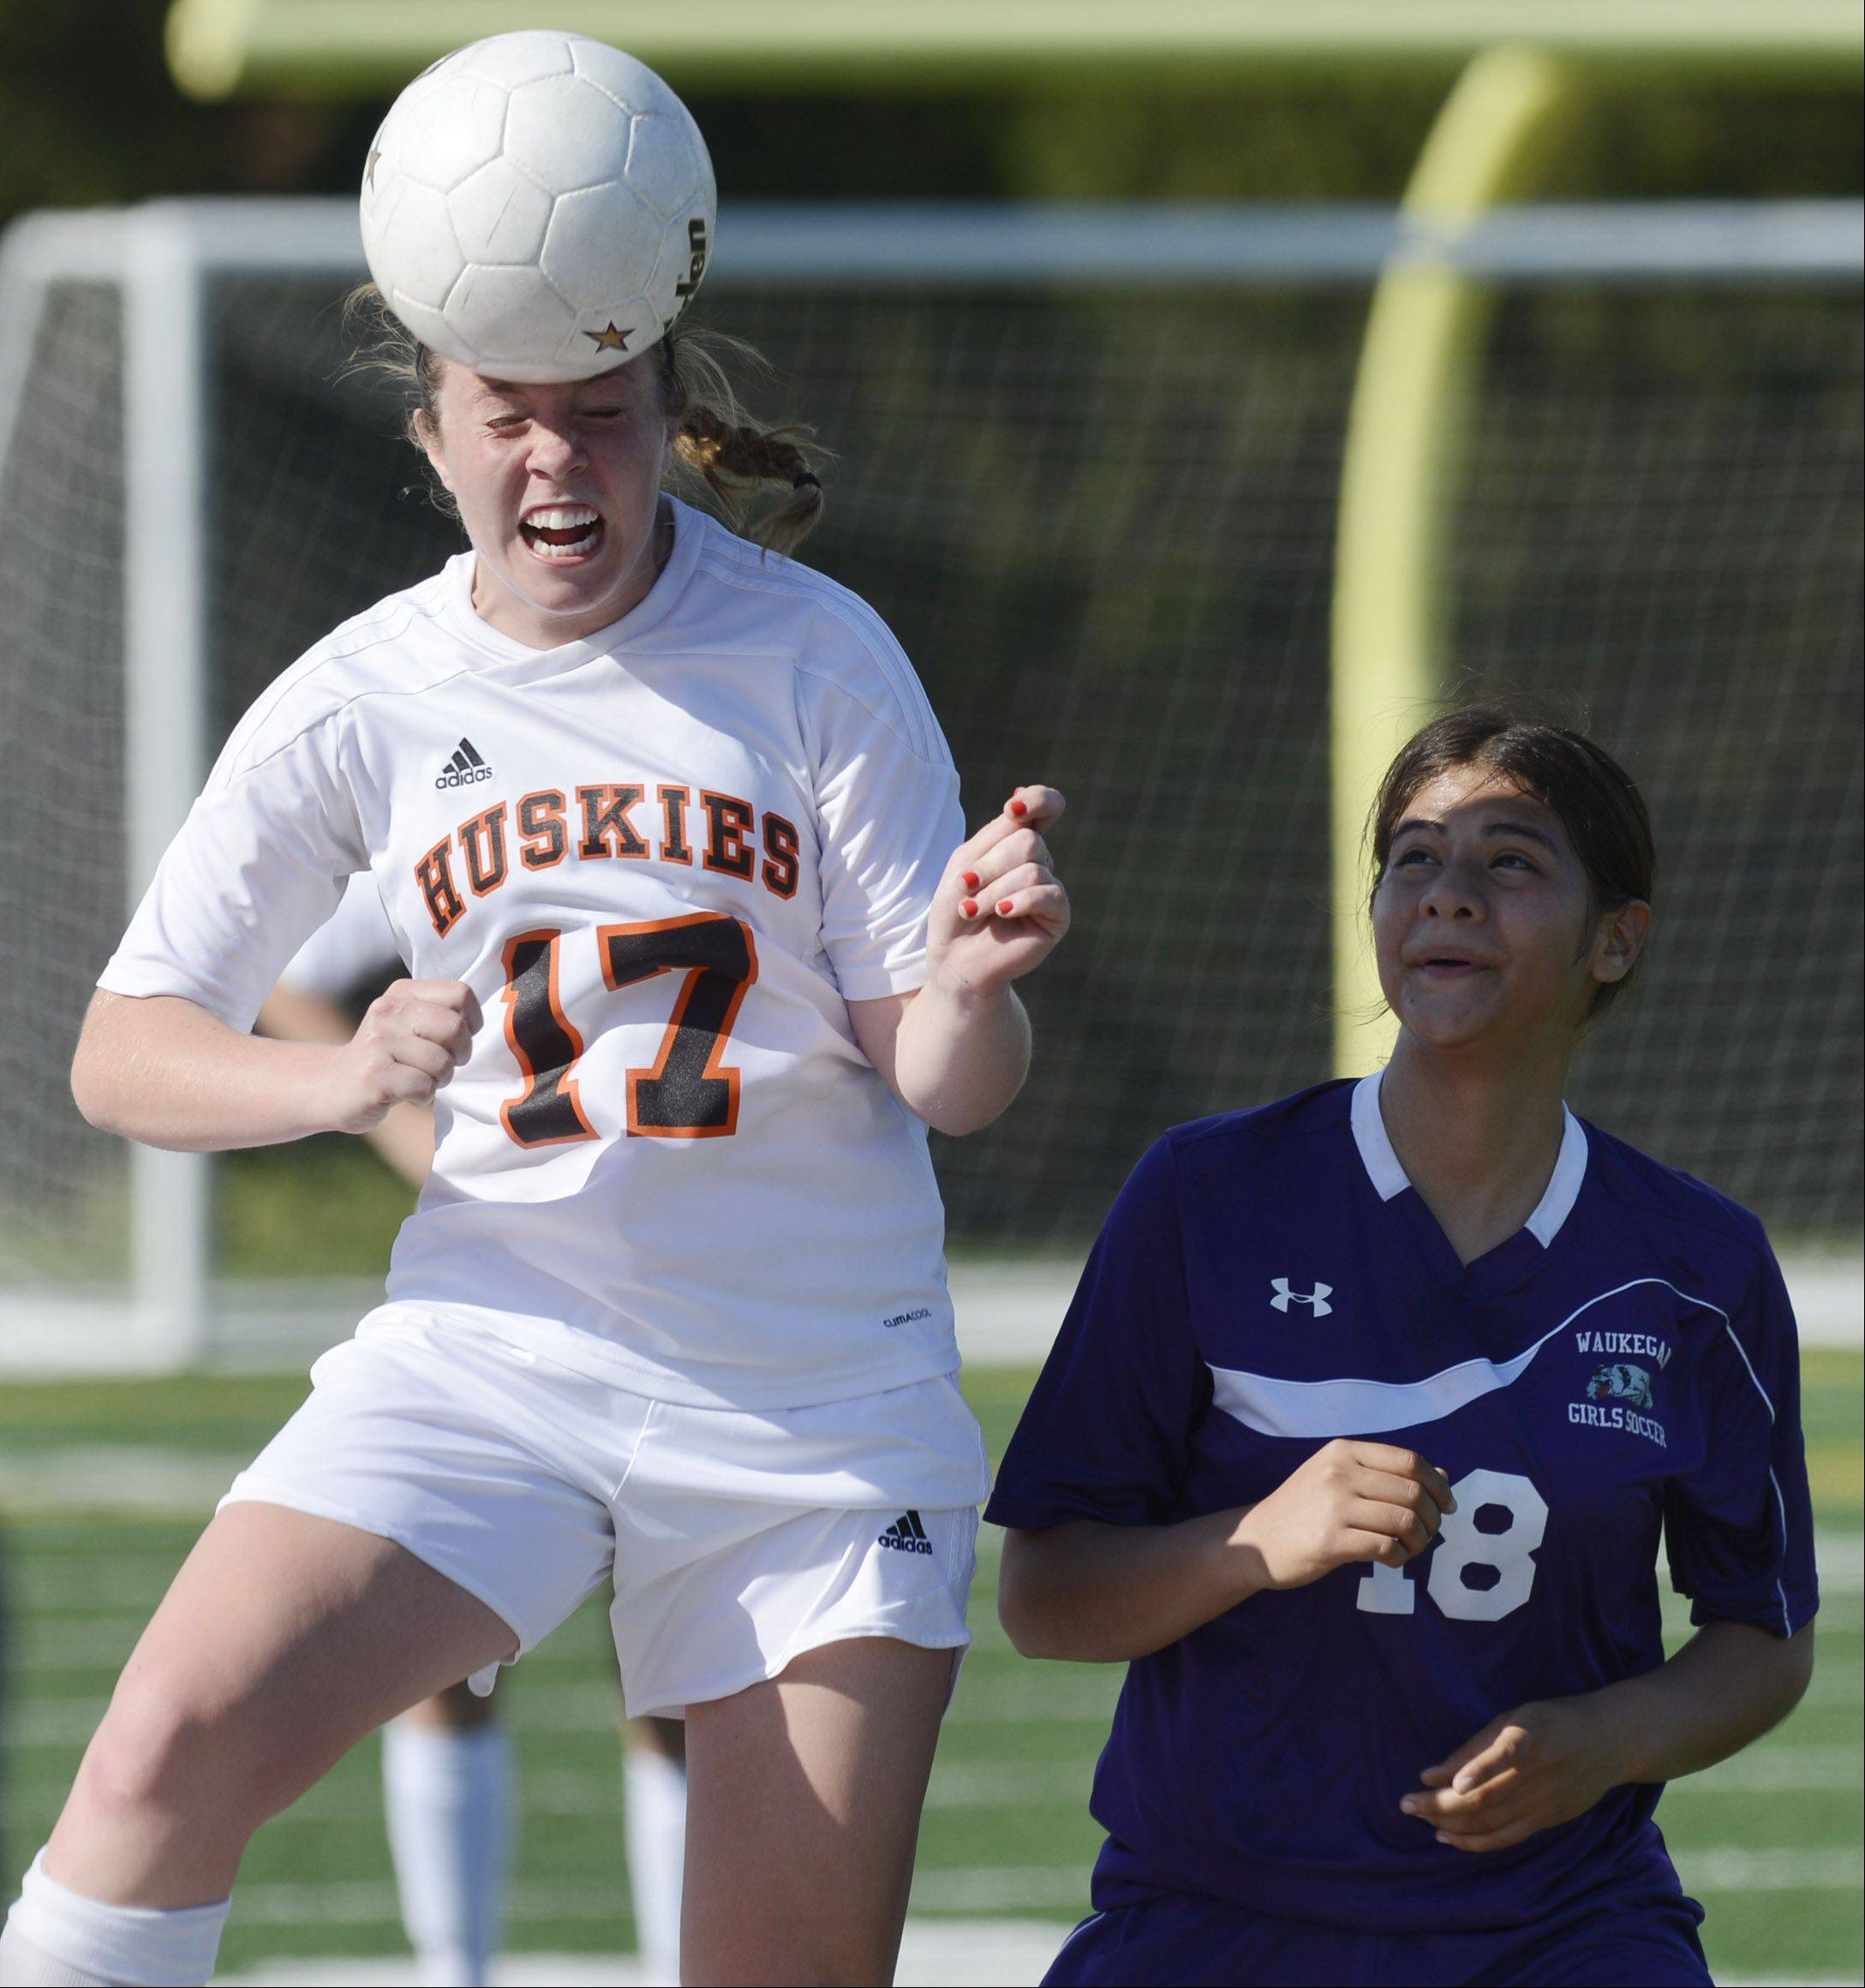 Hersey's Casey Weyhrich, left, leaps in front of Waukegan's Jacqueline Ortiz during Tuesday's regional semifinal in Arlington Heights. Weyhrich finished with 3 goals as Hersey won 7-0.